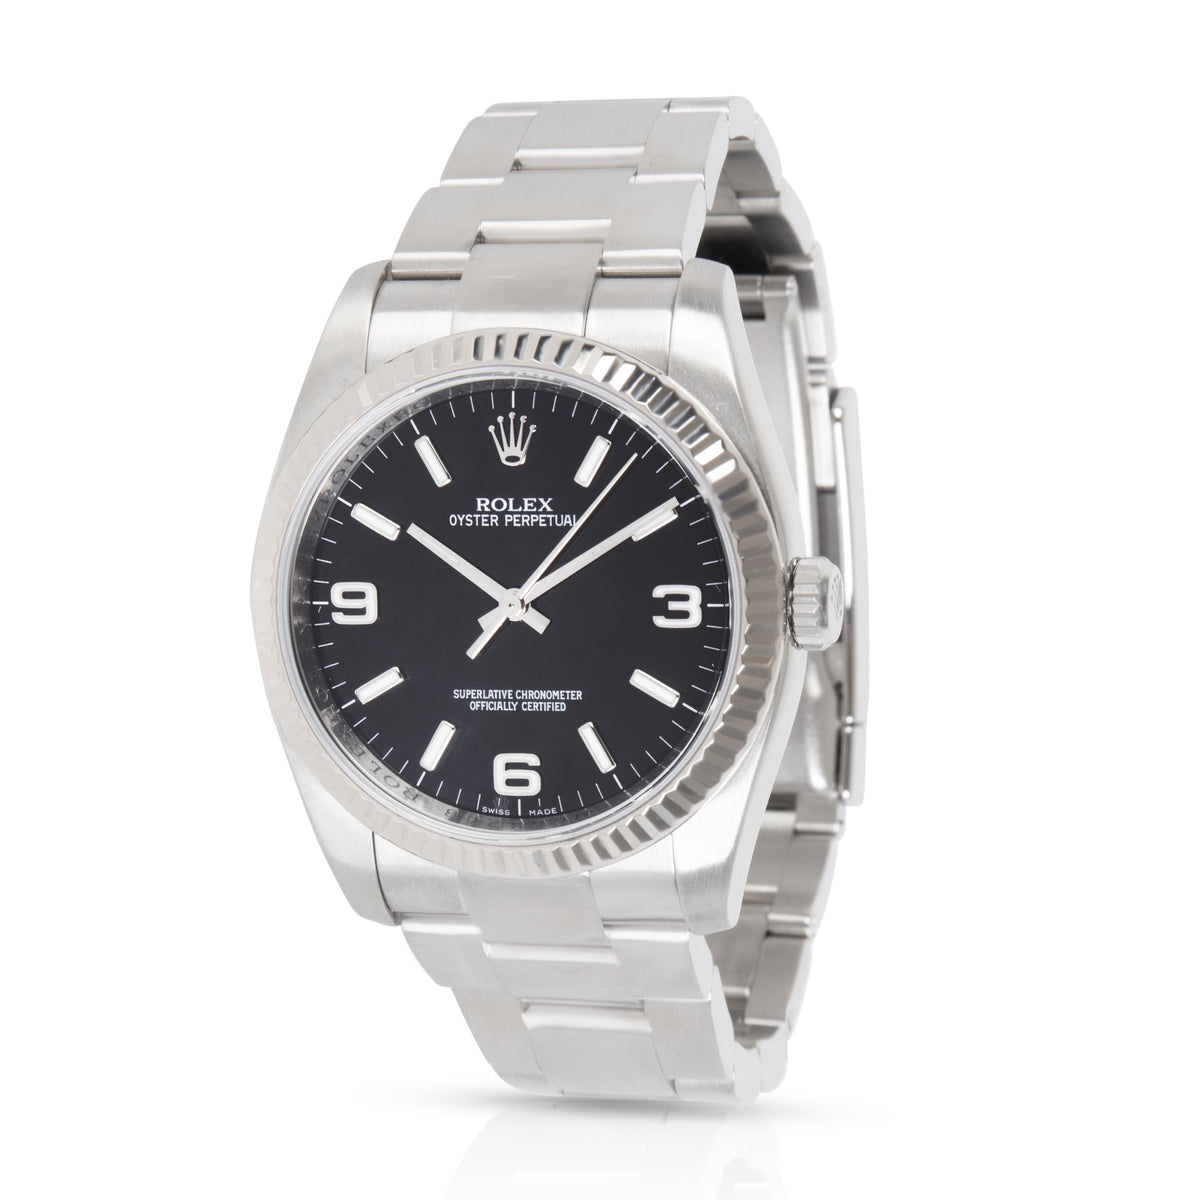 Rolex Oyster Perpetual 116034 Men's Watch in  Stainless Steel